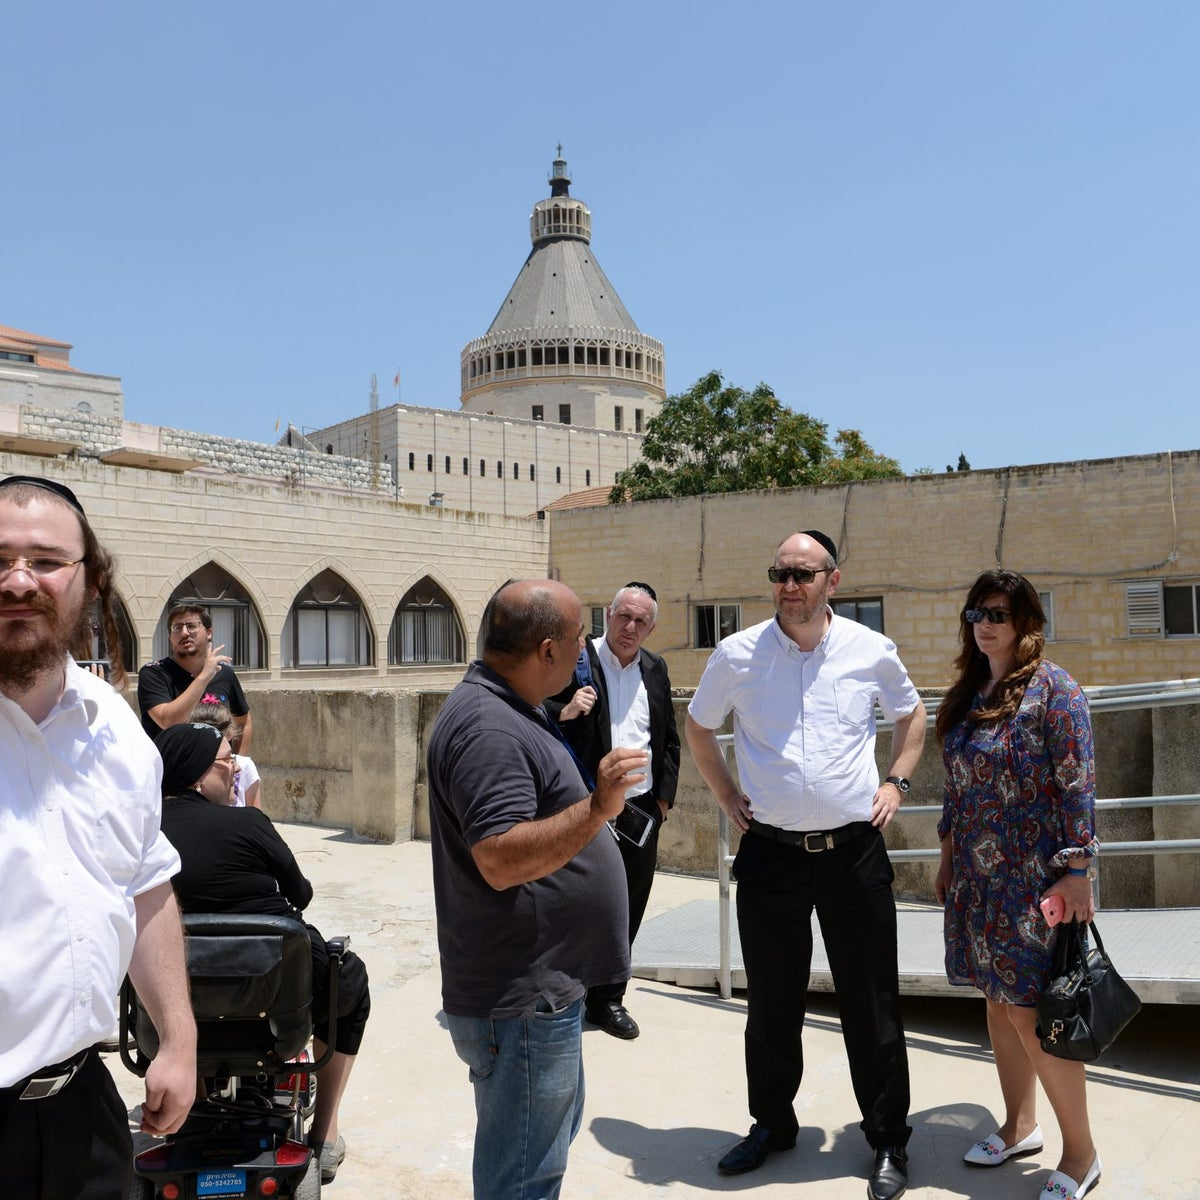 Tour guide Ibrahim (center) escorting the group of Haredi Jews around Nazareth. The Church of the Annunciation is in the background.